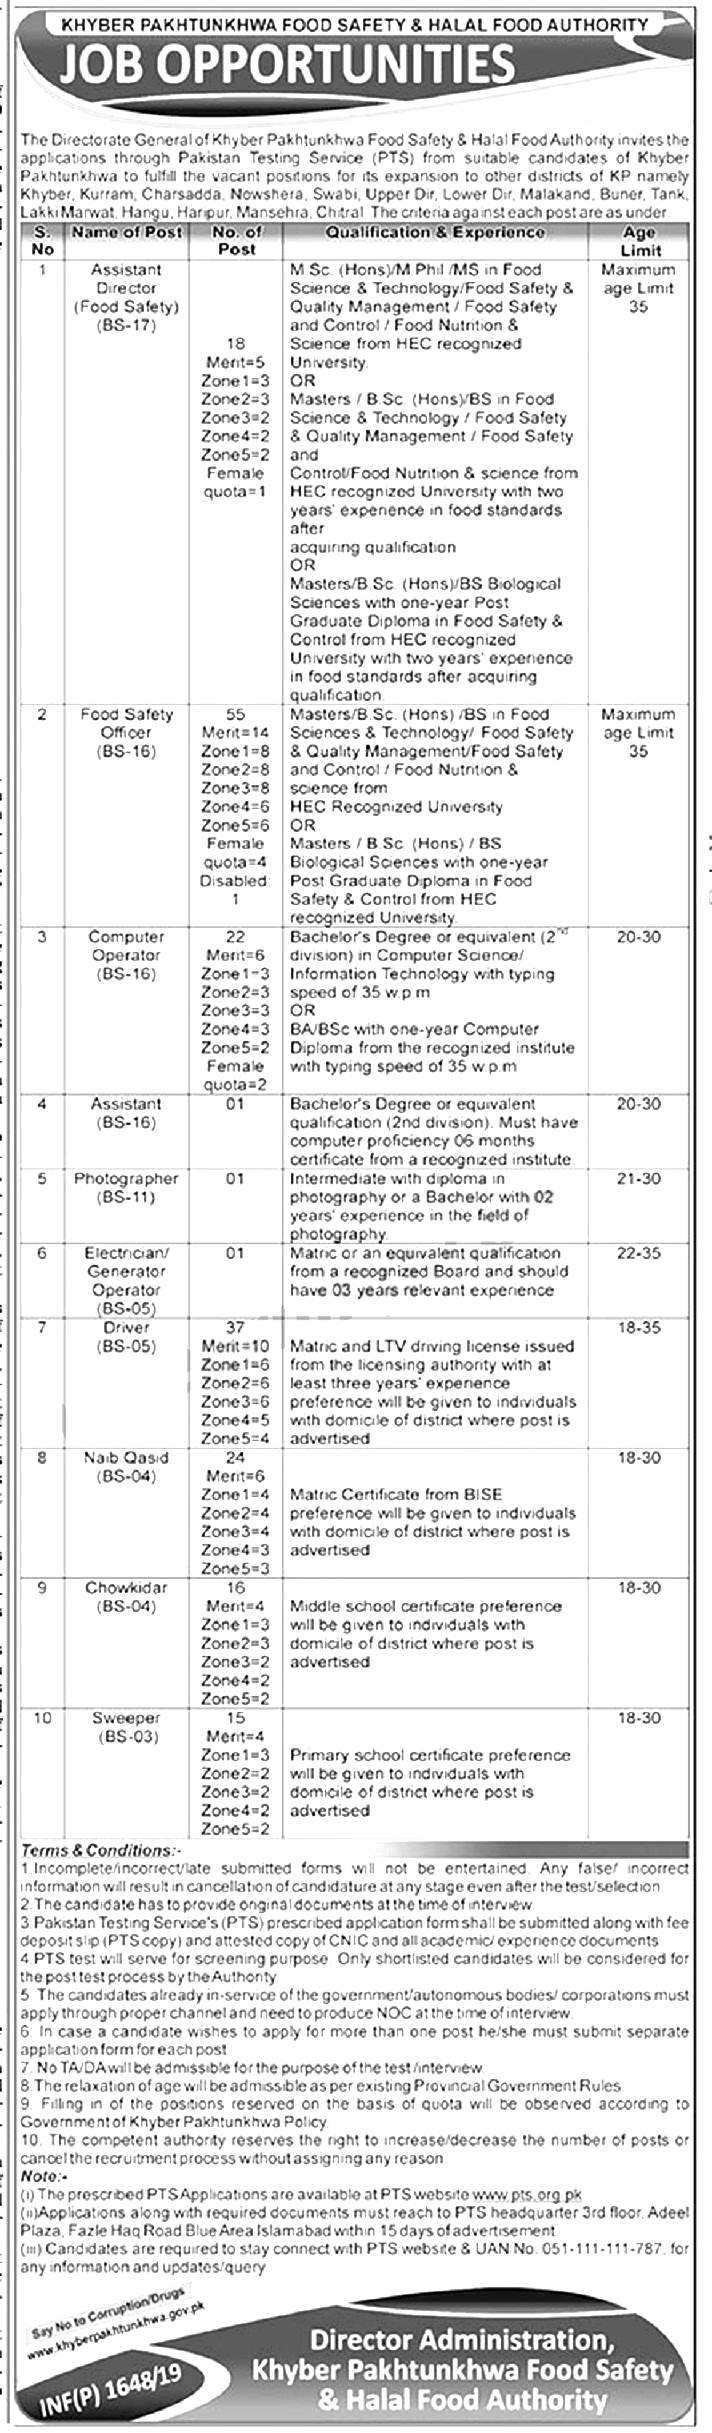 KPK Food Safety & Halal Food Authority PTS Jobs 2019 Application